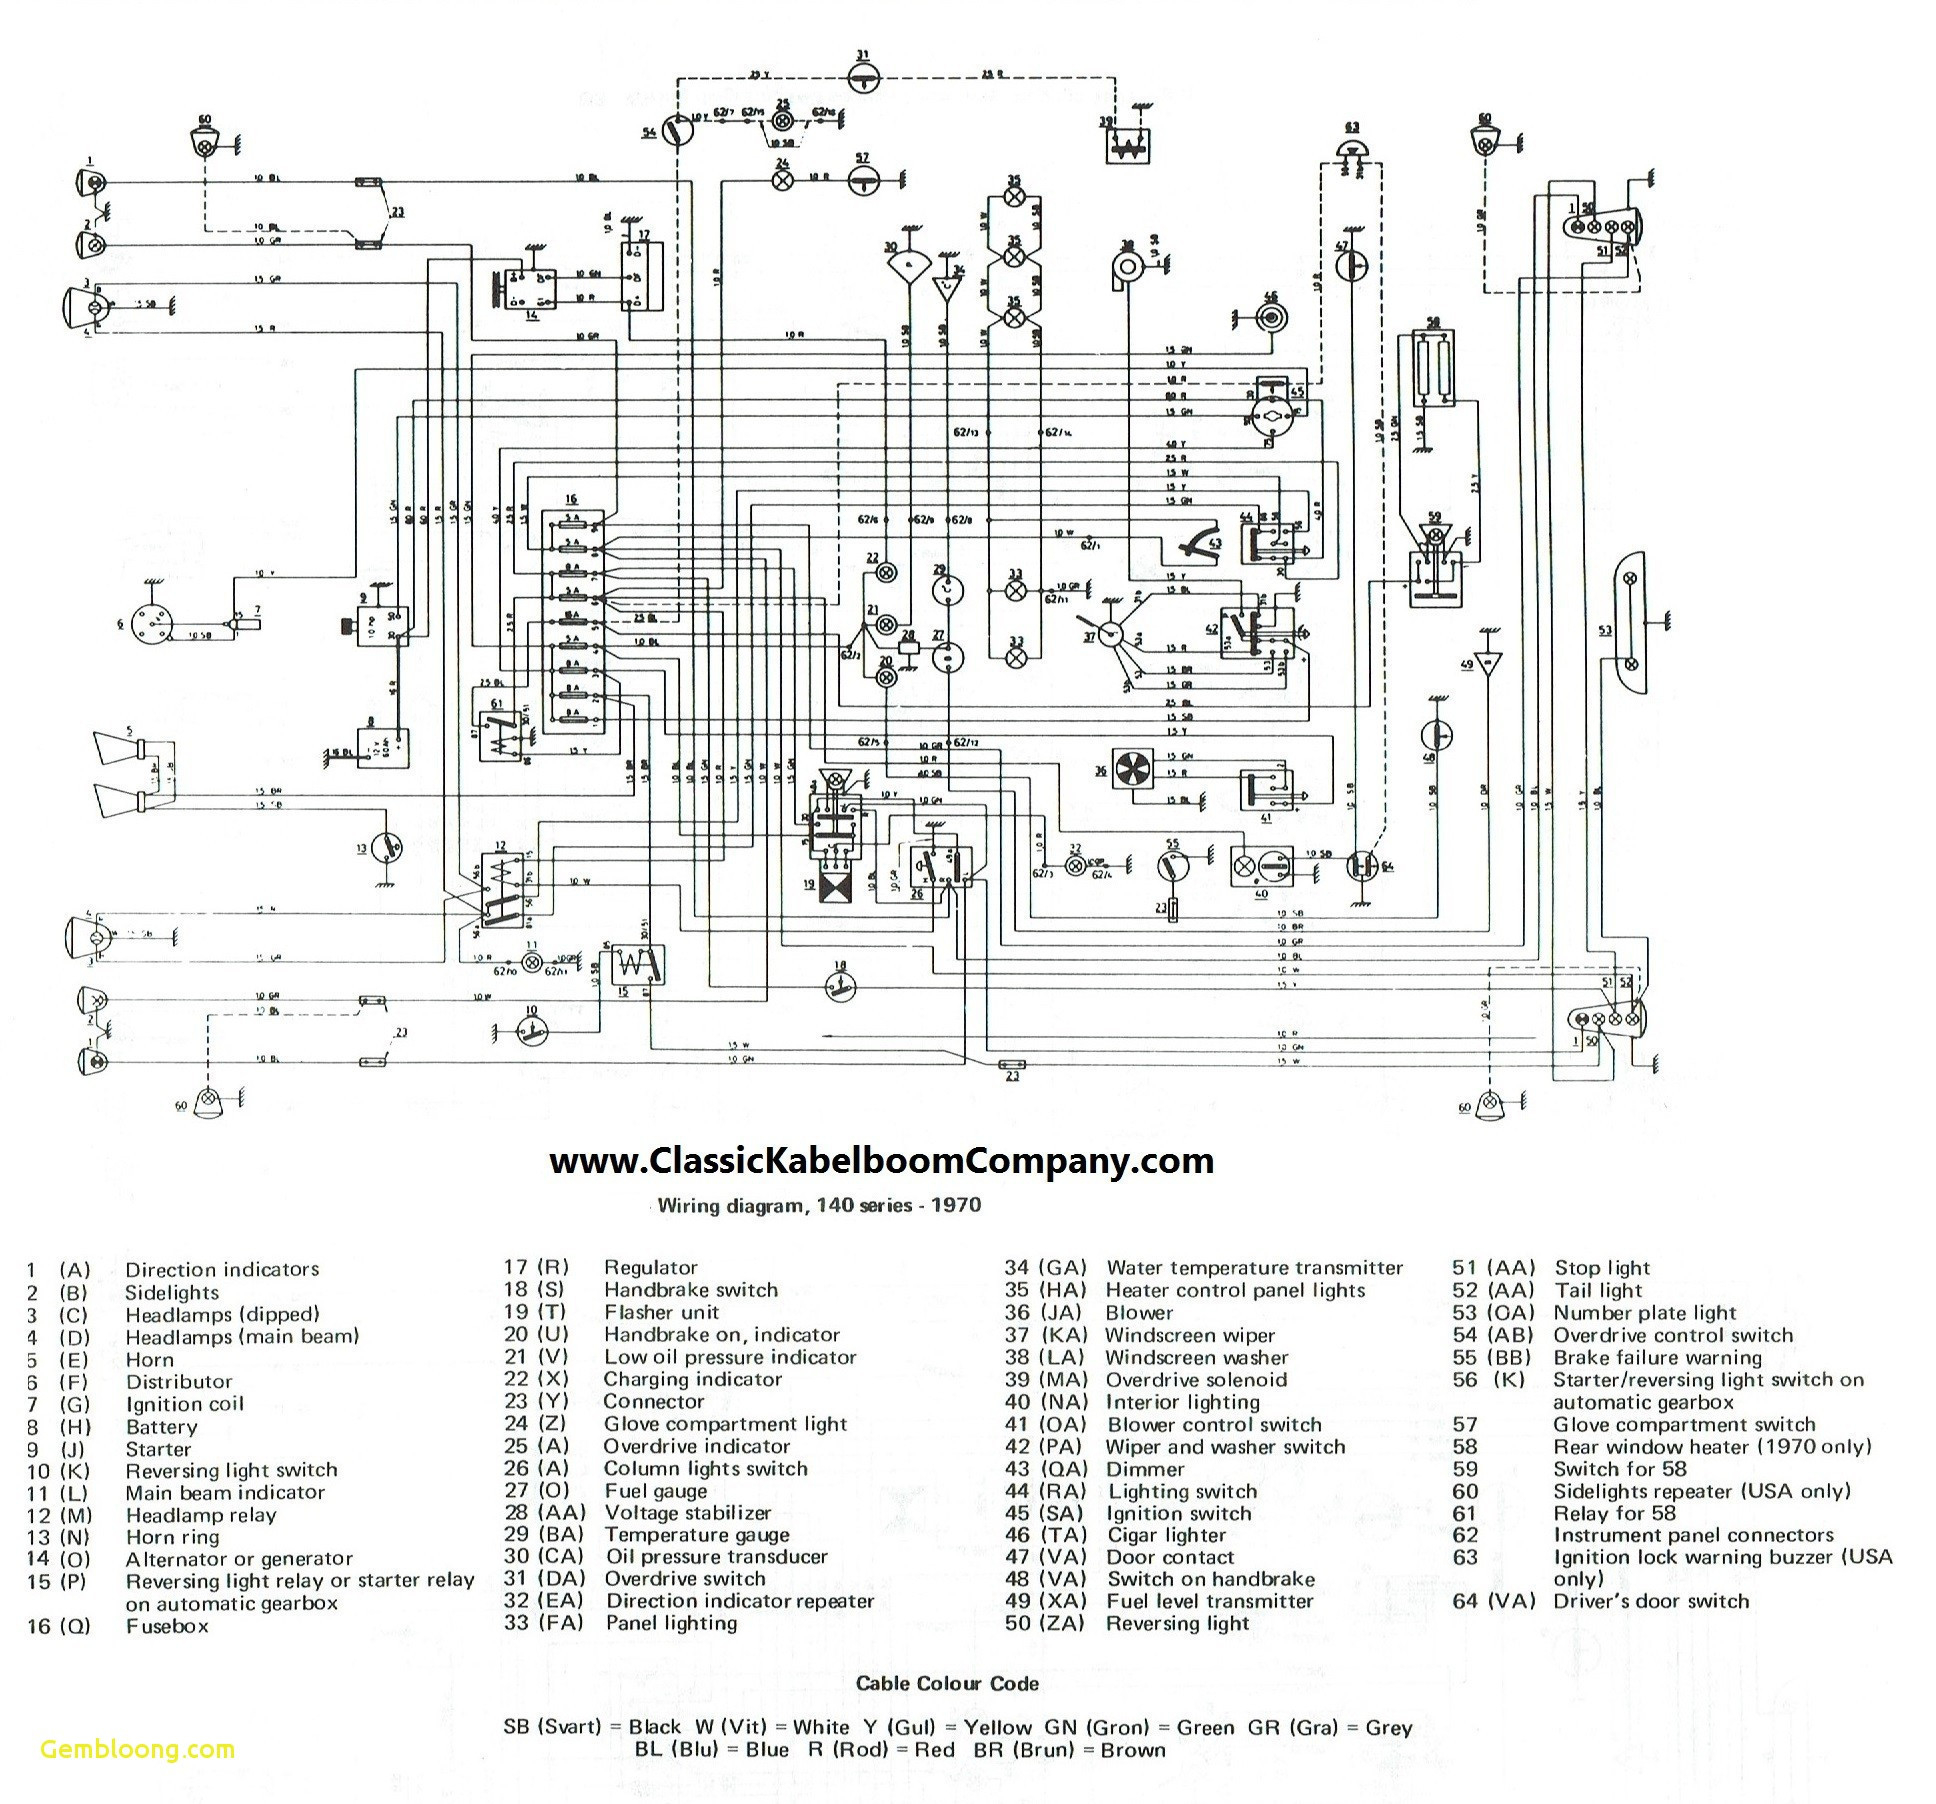 Volvo Penta Wiring Diagram from wholefoodsonabudget.com